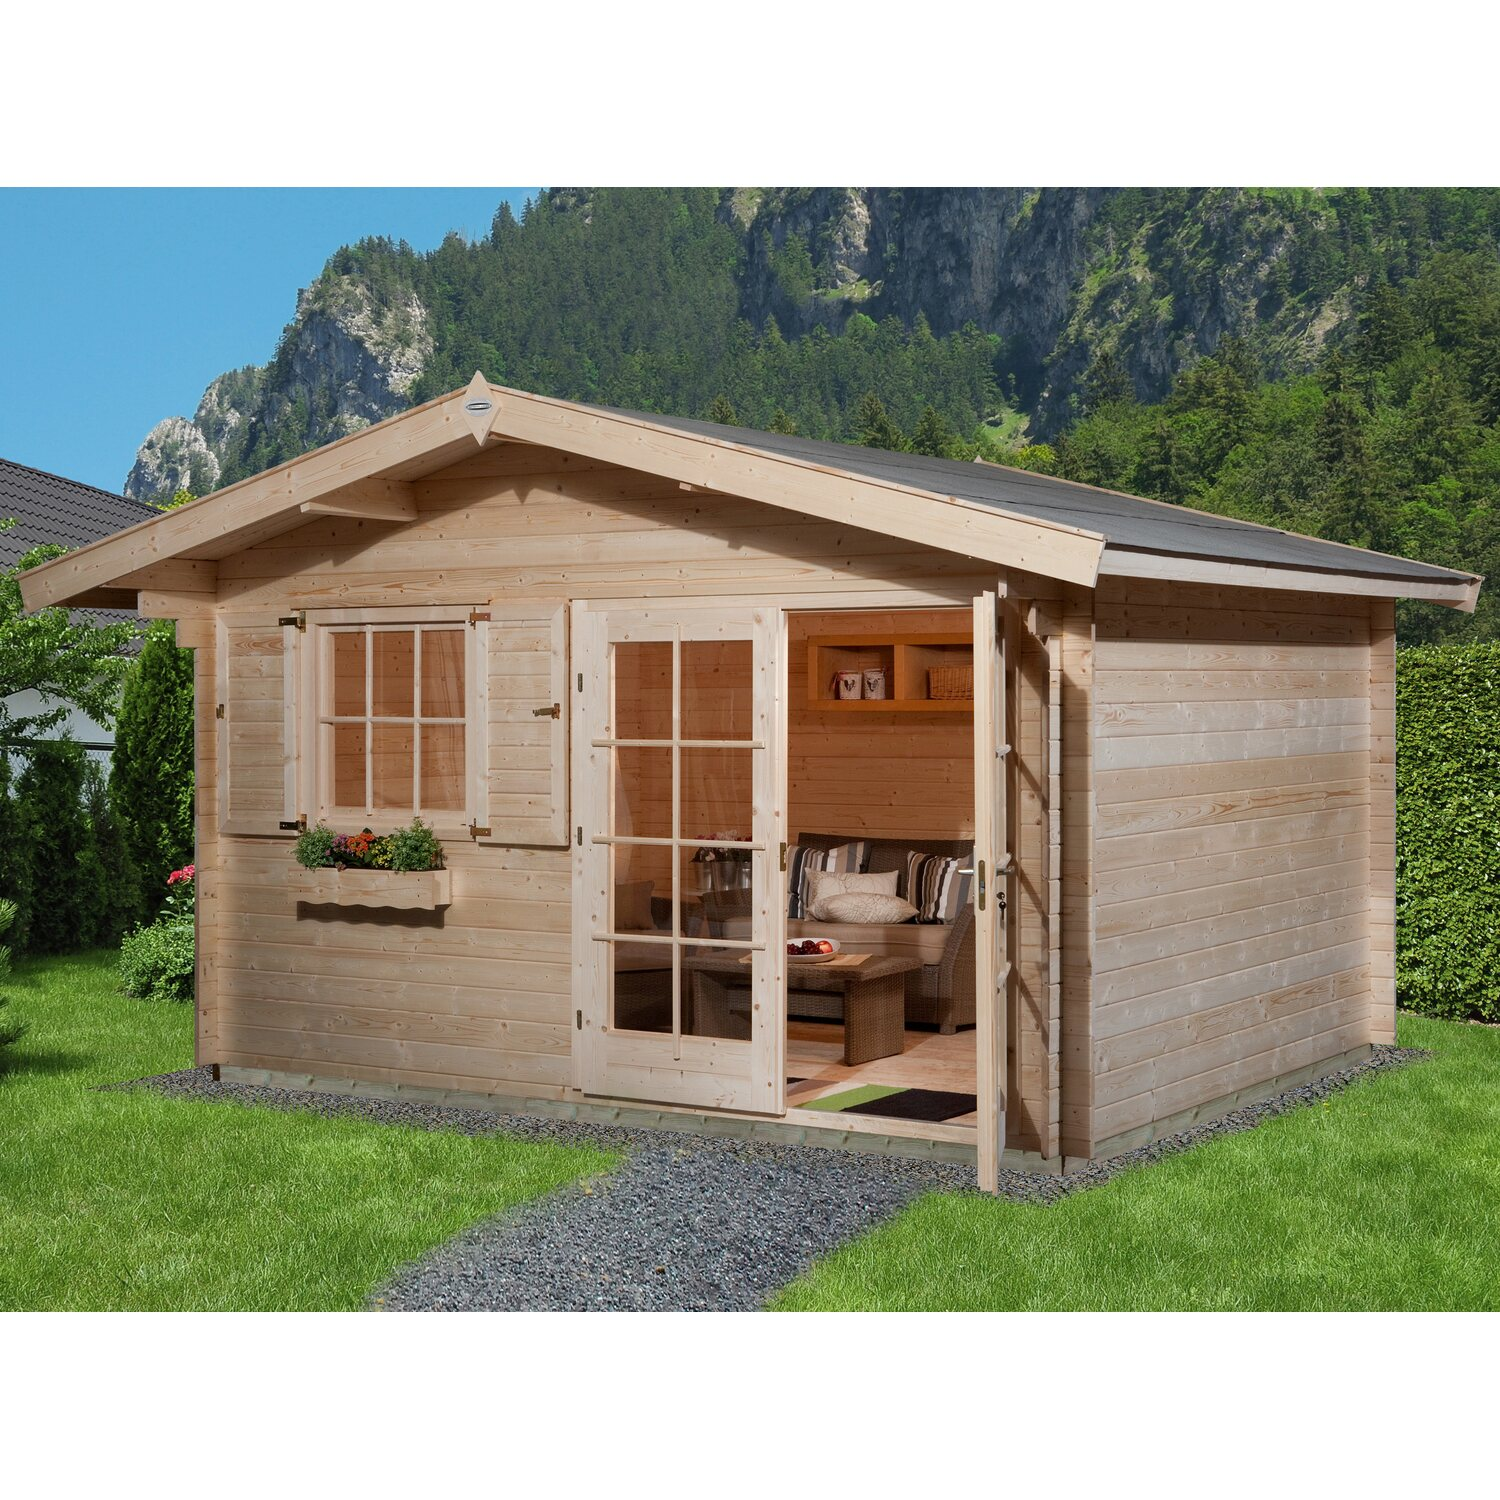 obi gartenhaus panorama my blog. Black Bedroom Furniture Sets. Home Design Ideas